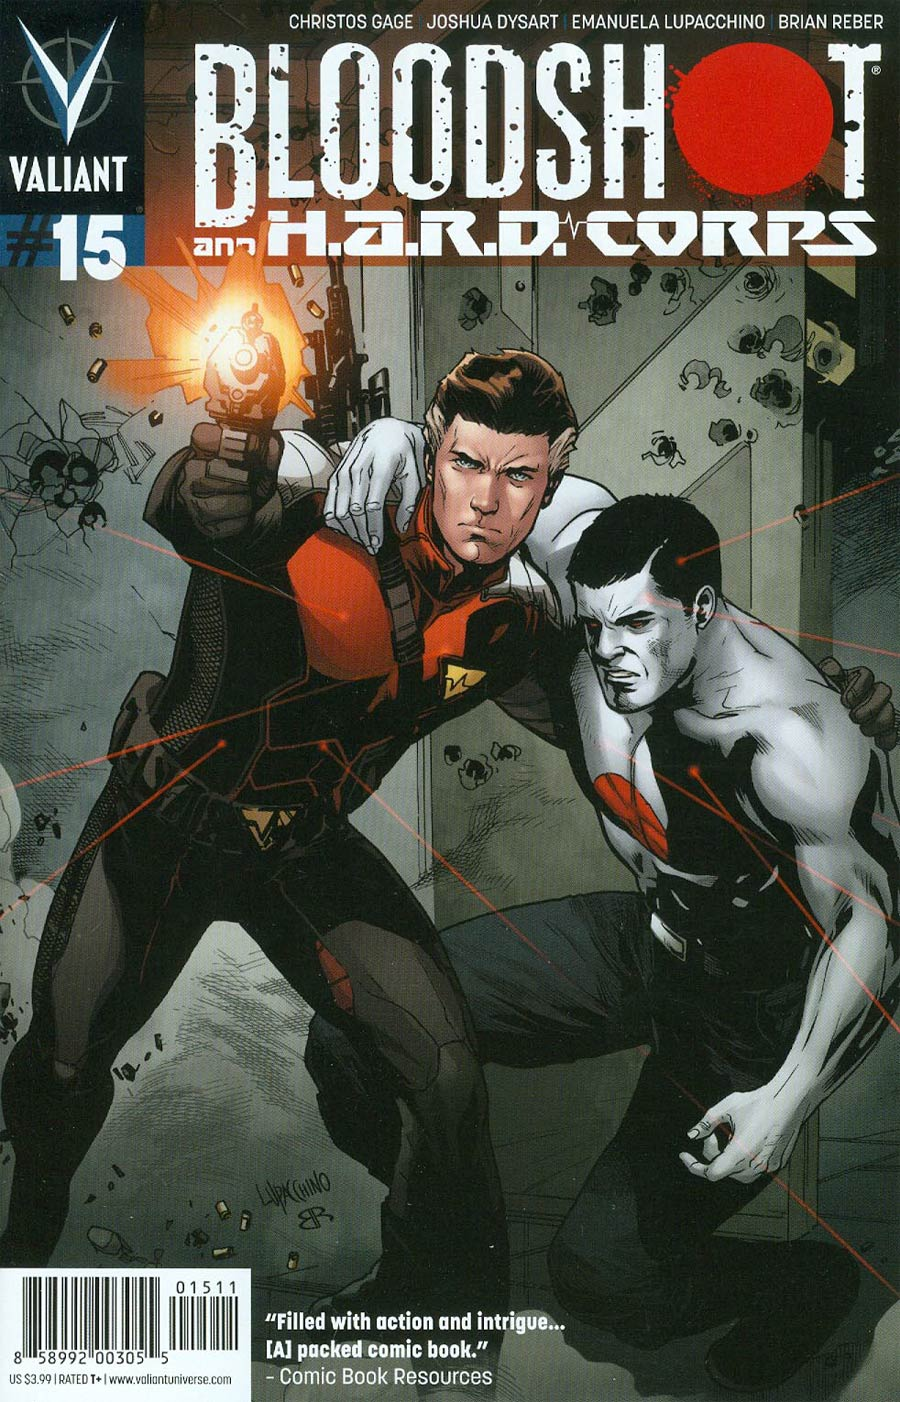 Bloodshot And H.A.R.D. Corps #15 Cover A Regular Emanuela Lupacchino Cover